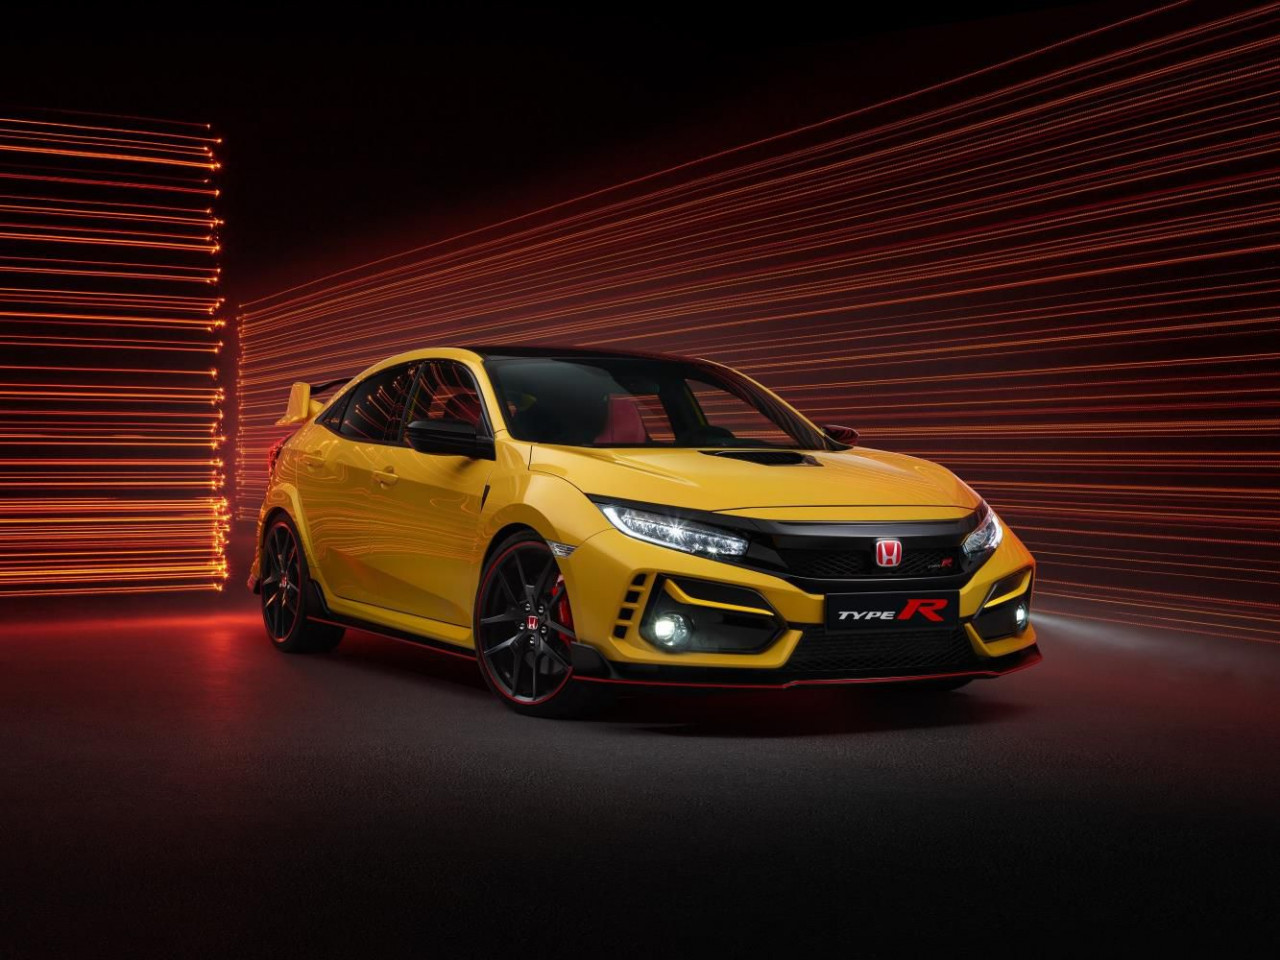 Honda Civic Type R Limited Edition sold out